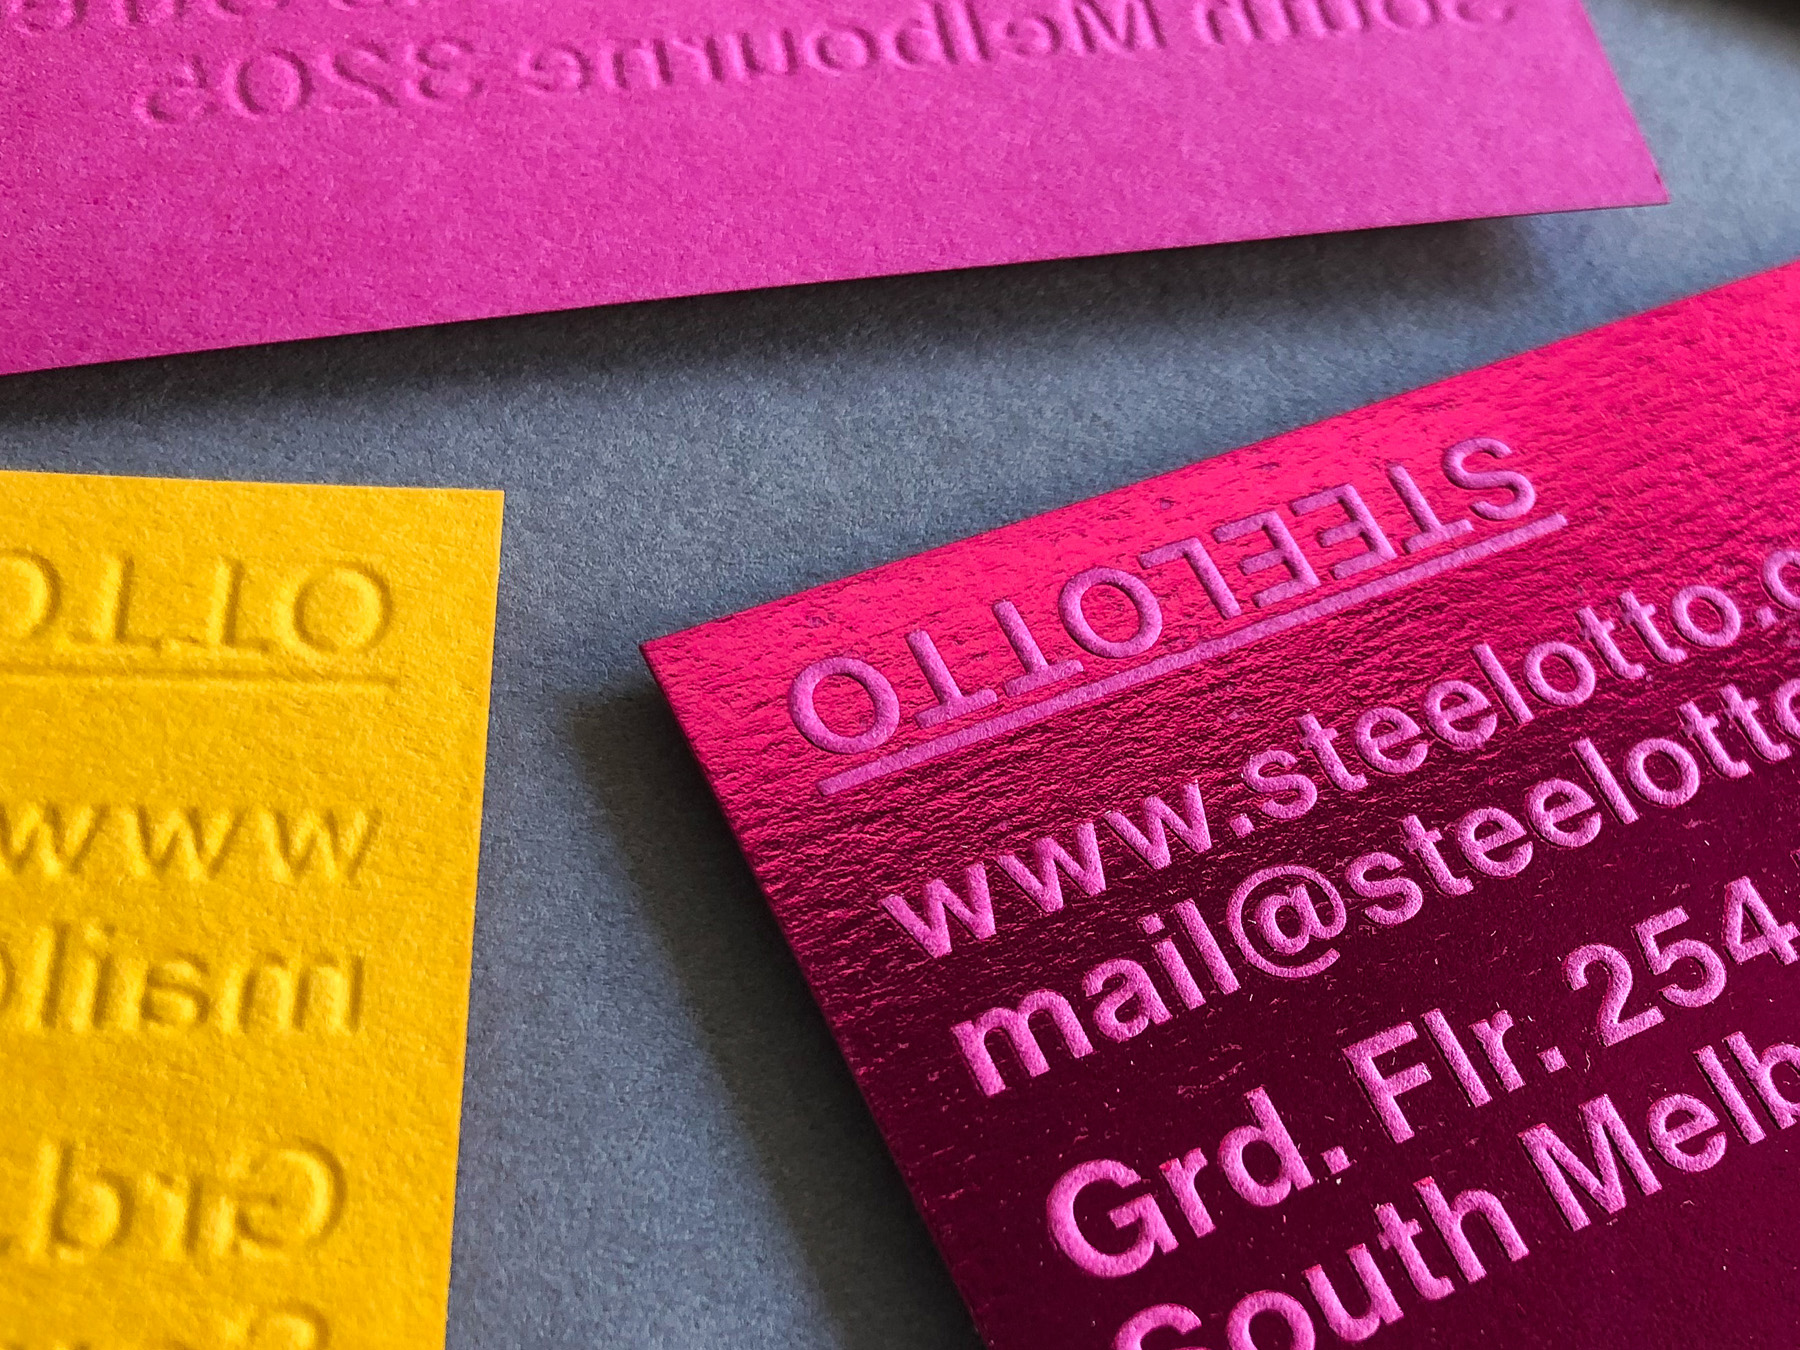 Foil business cards embossed for Steeletto Business Cards on Colorplan 1